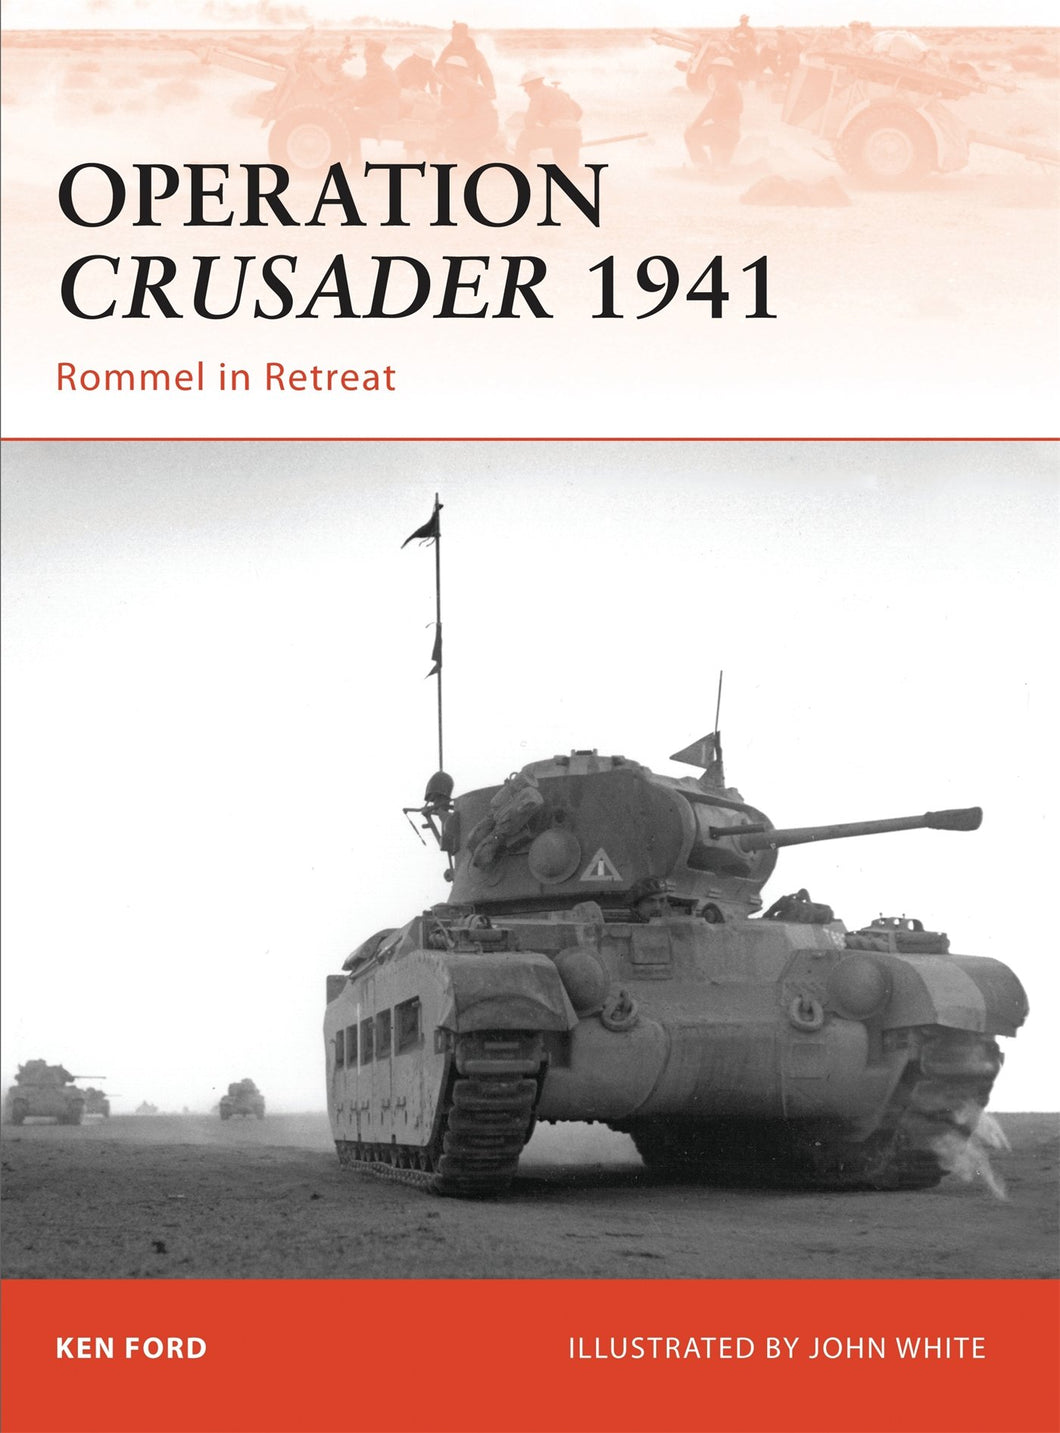 Operation Crusader 1941: Rommel in Retreat - The Tank Museum